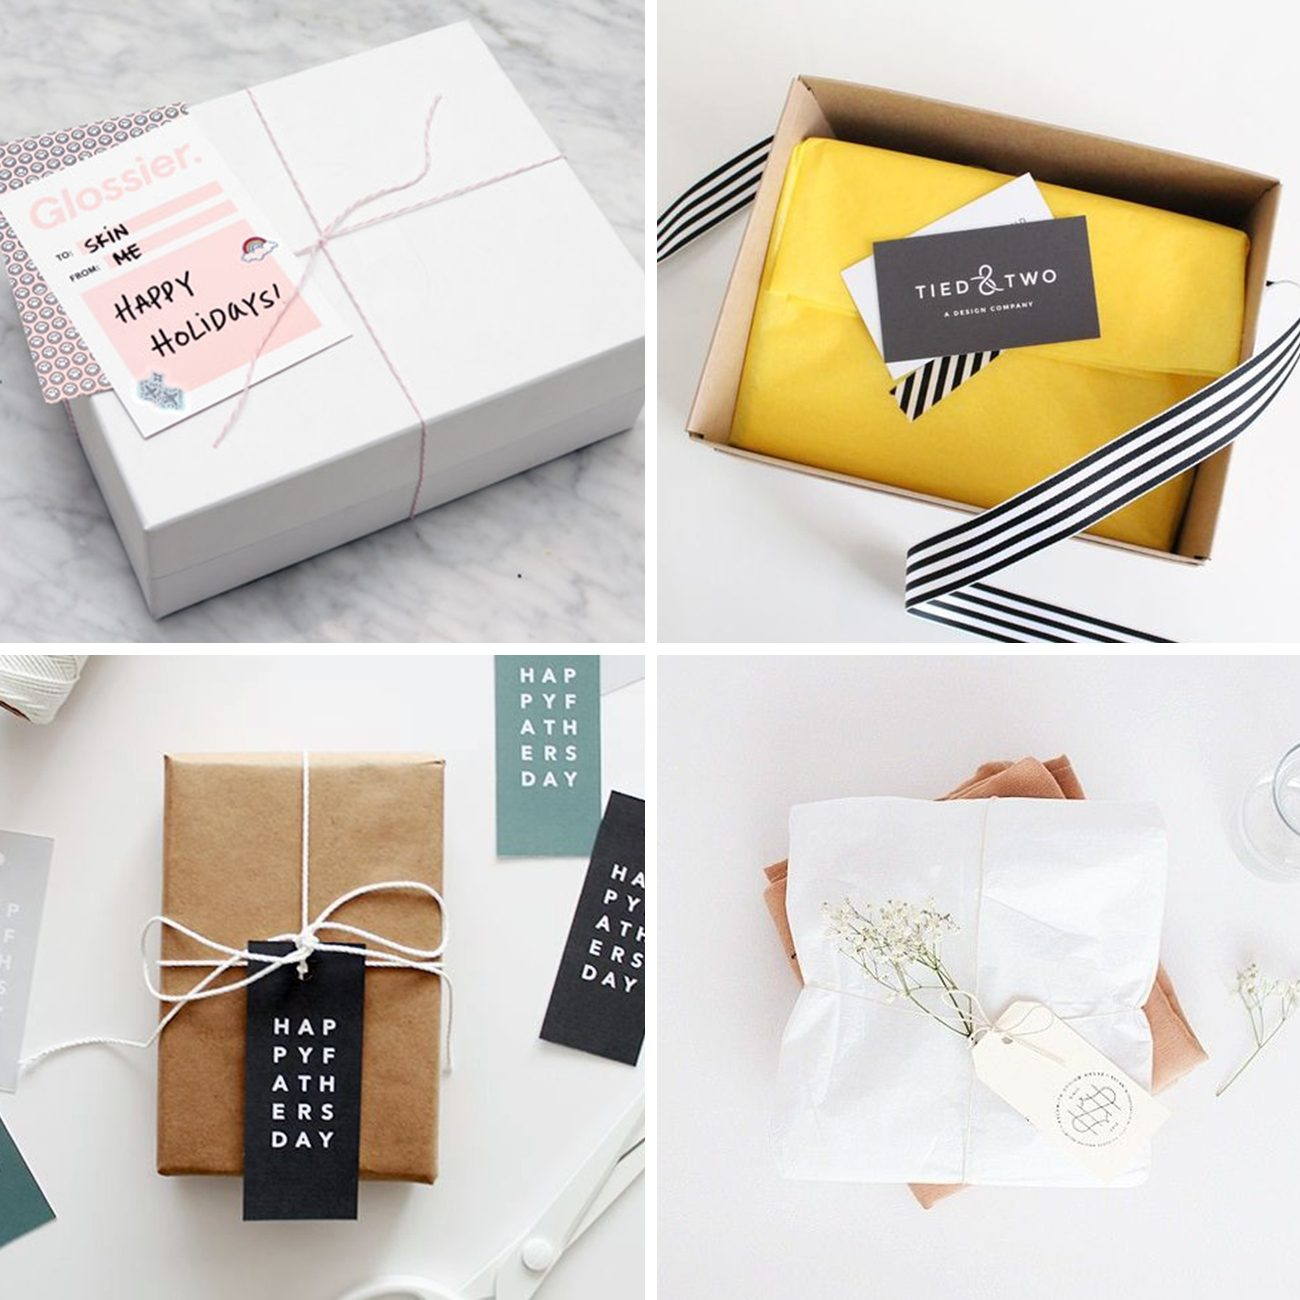 Photos via: —, Glossier, Tied & Two, Almost Makes Perfect, Oh So Pretty 60 Ideas to Spruce Up Your Holiday Packaging Design